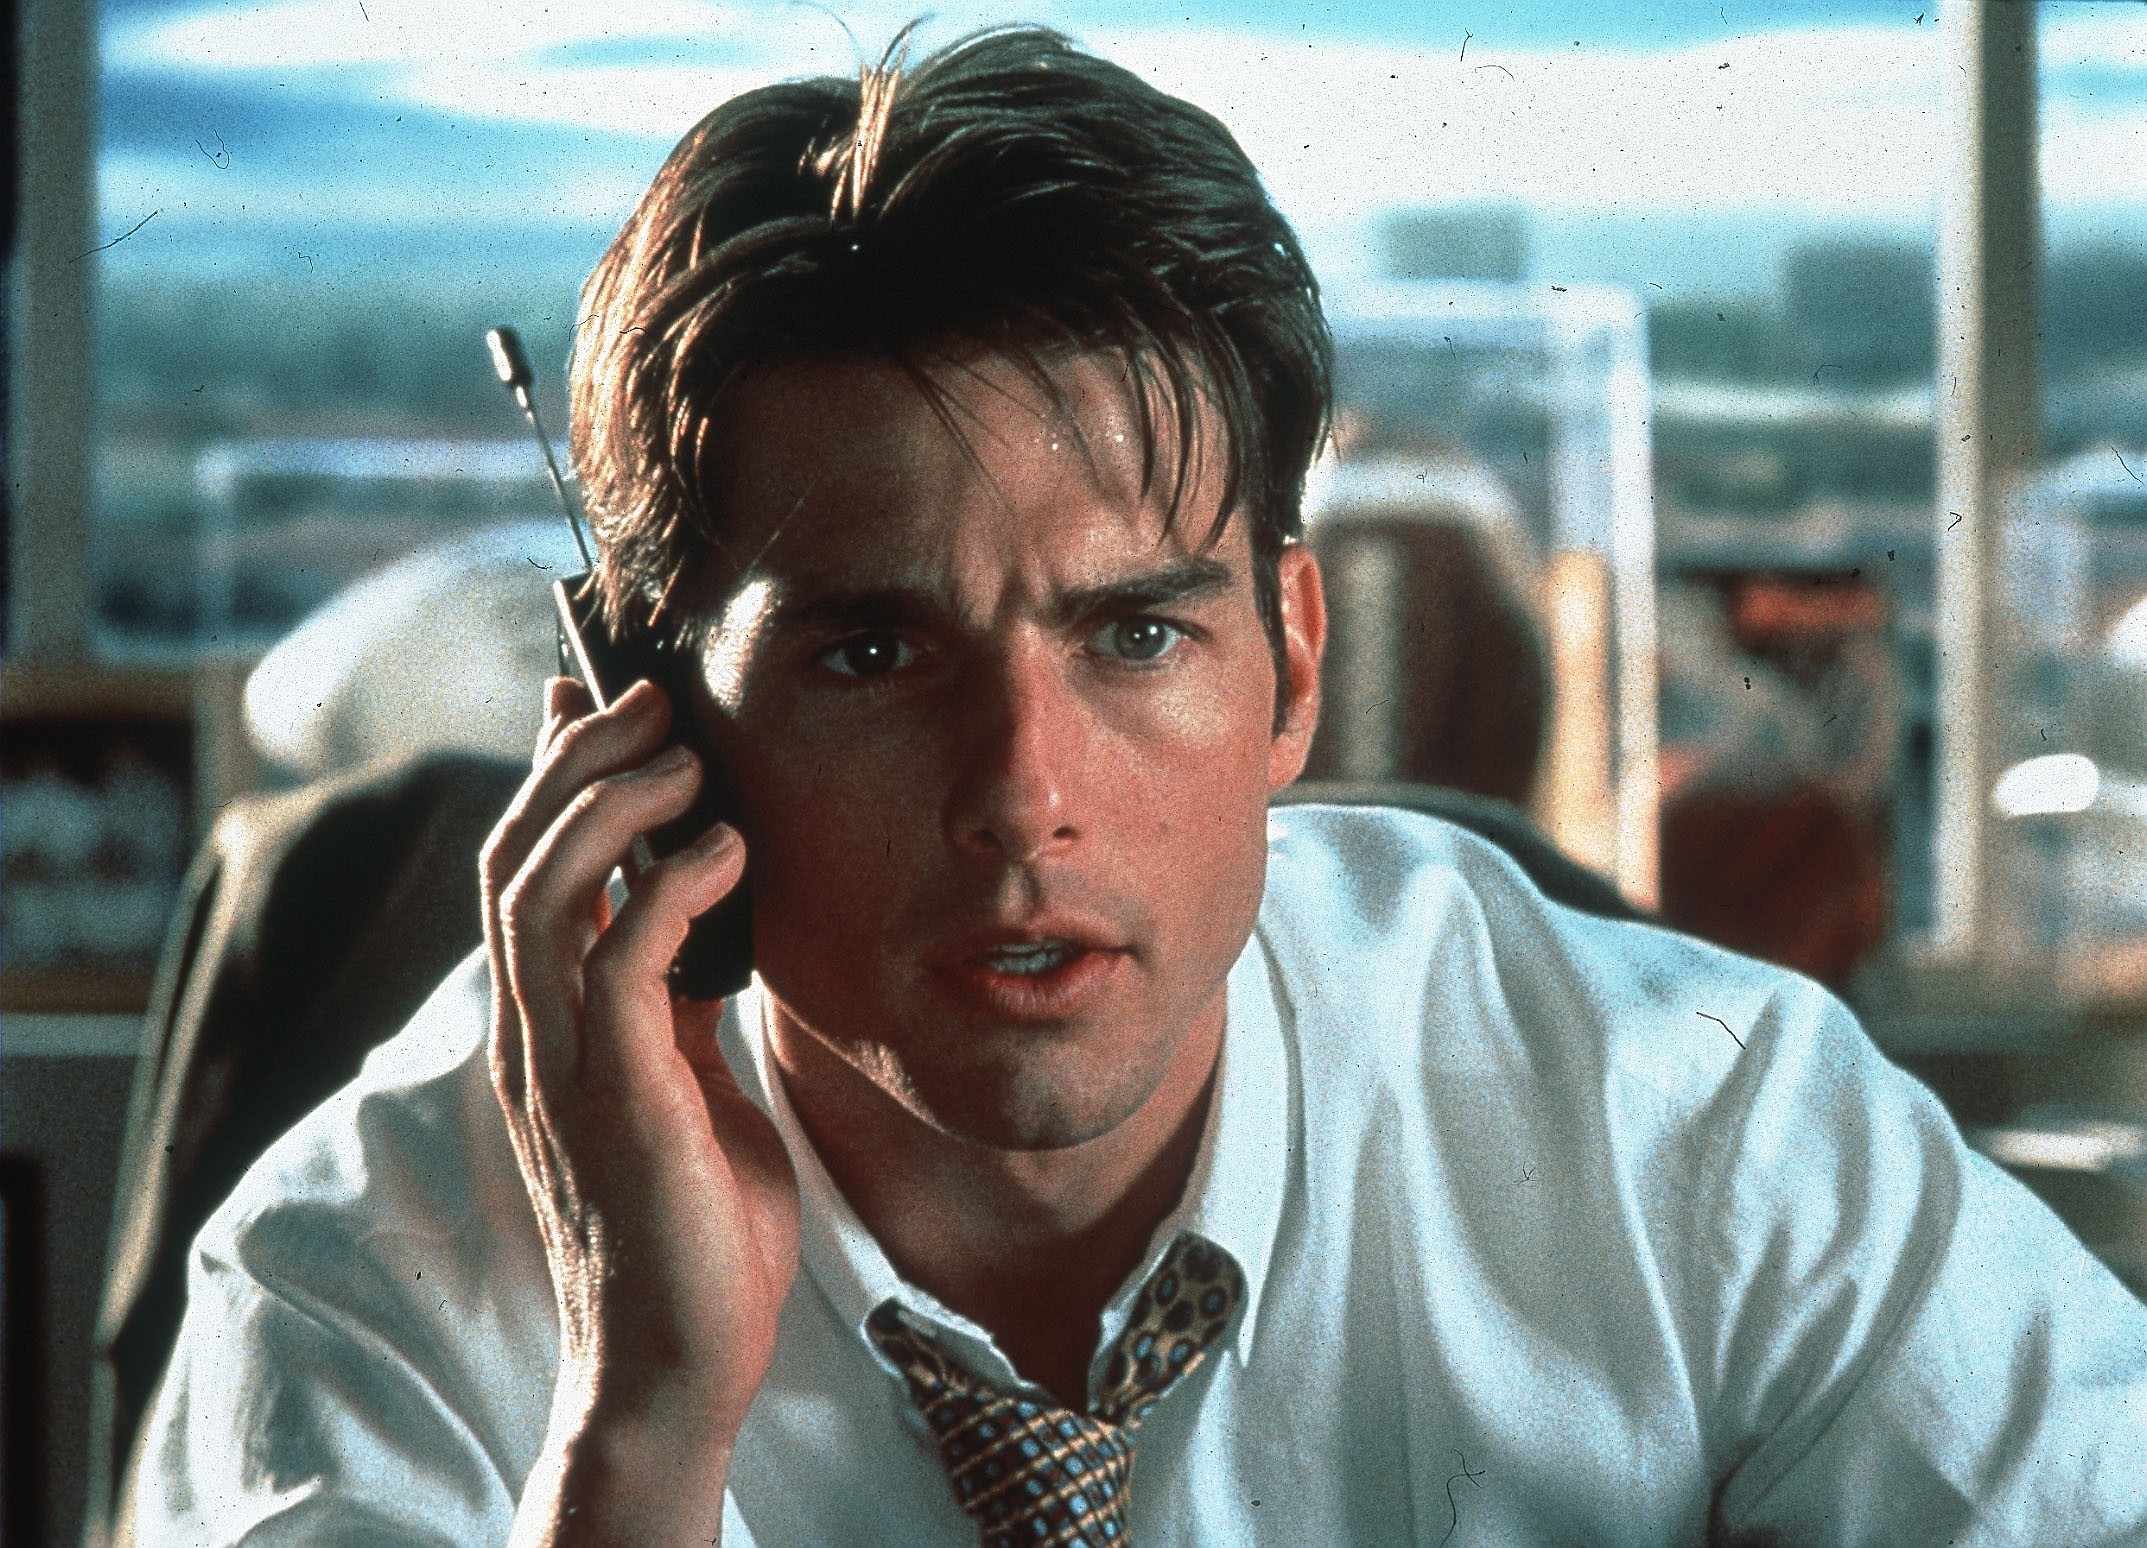 Jerry Maguire,  Jerry Maguire, 1996.